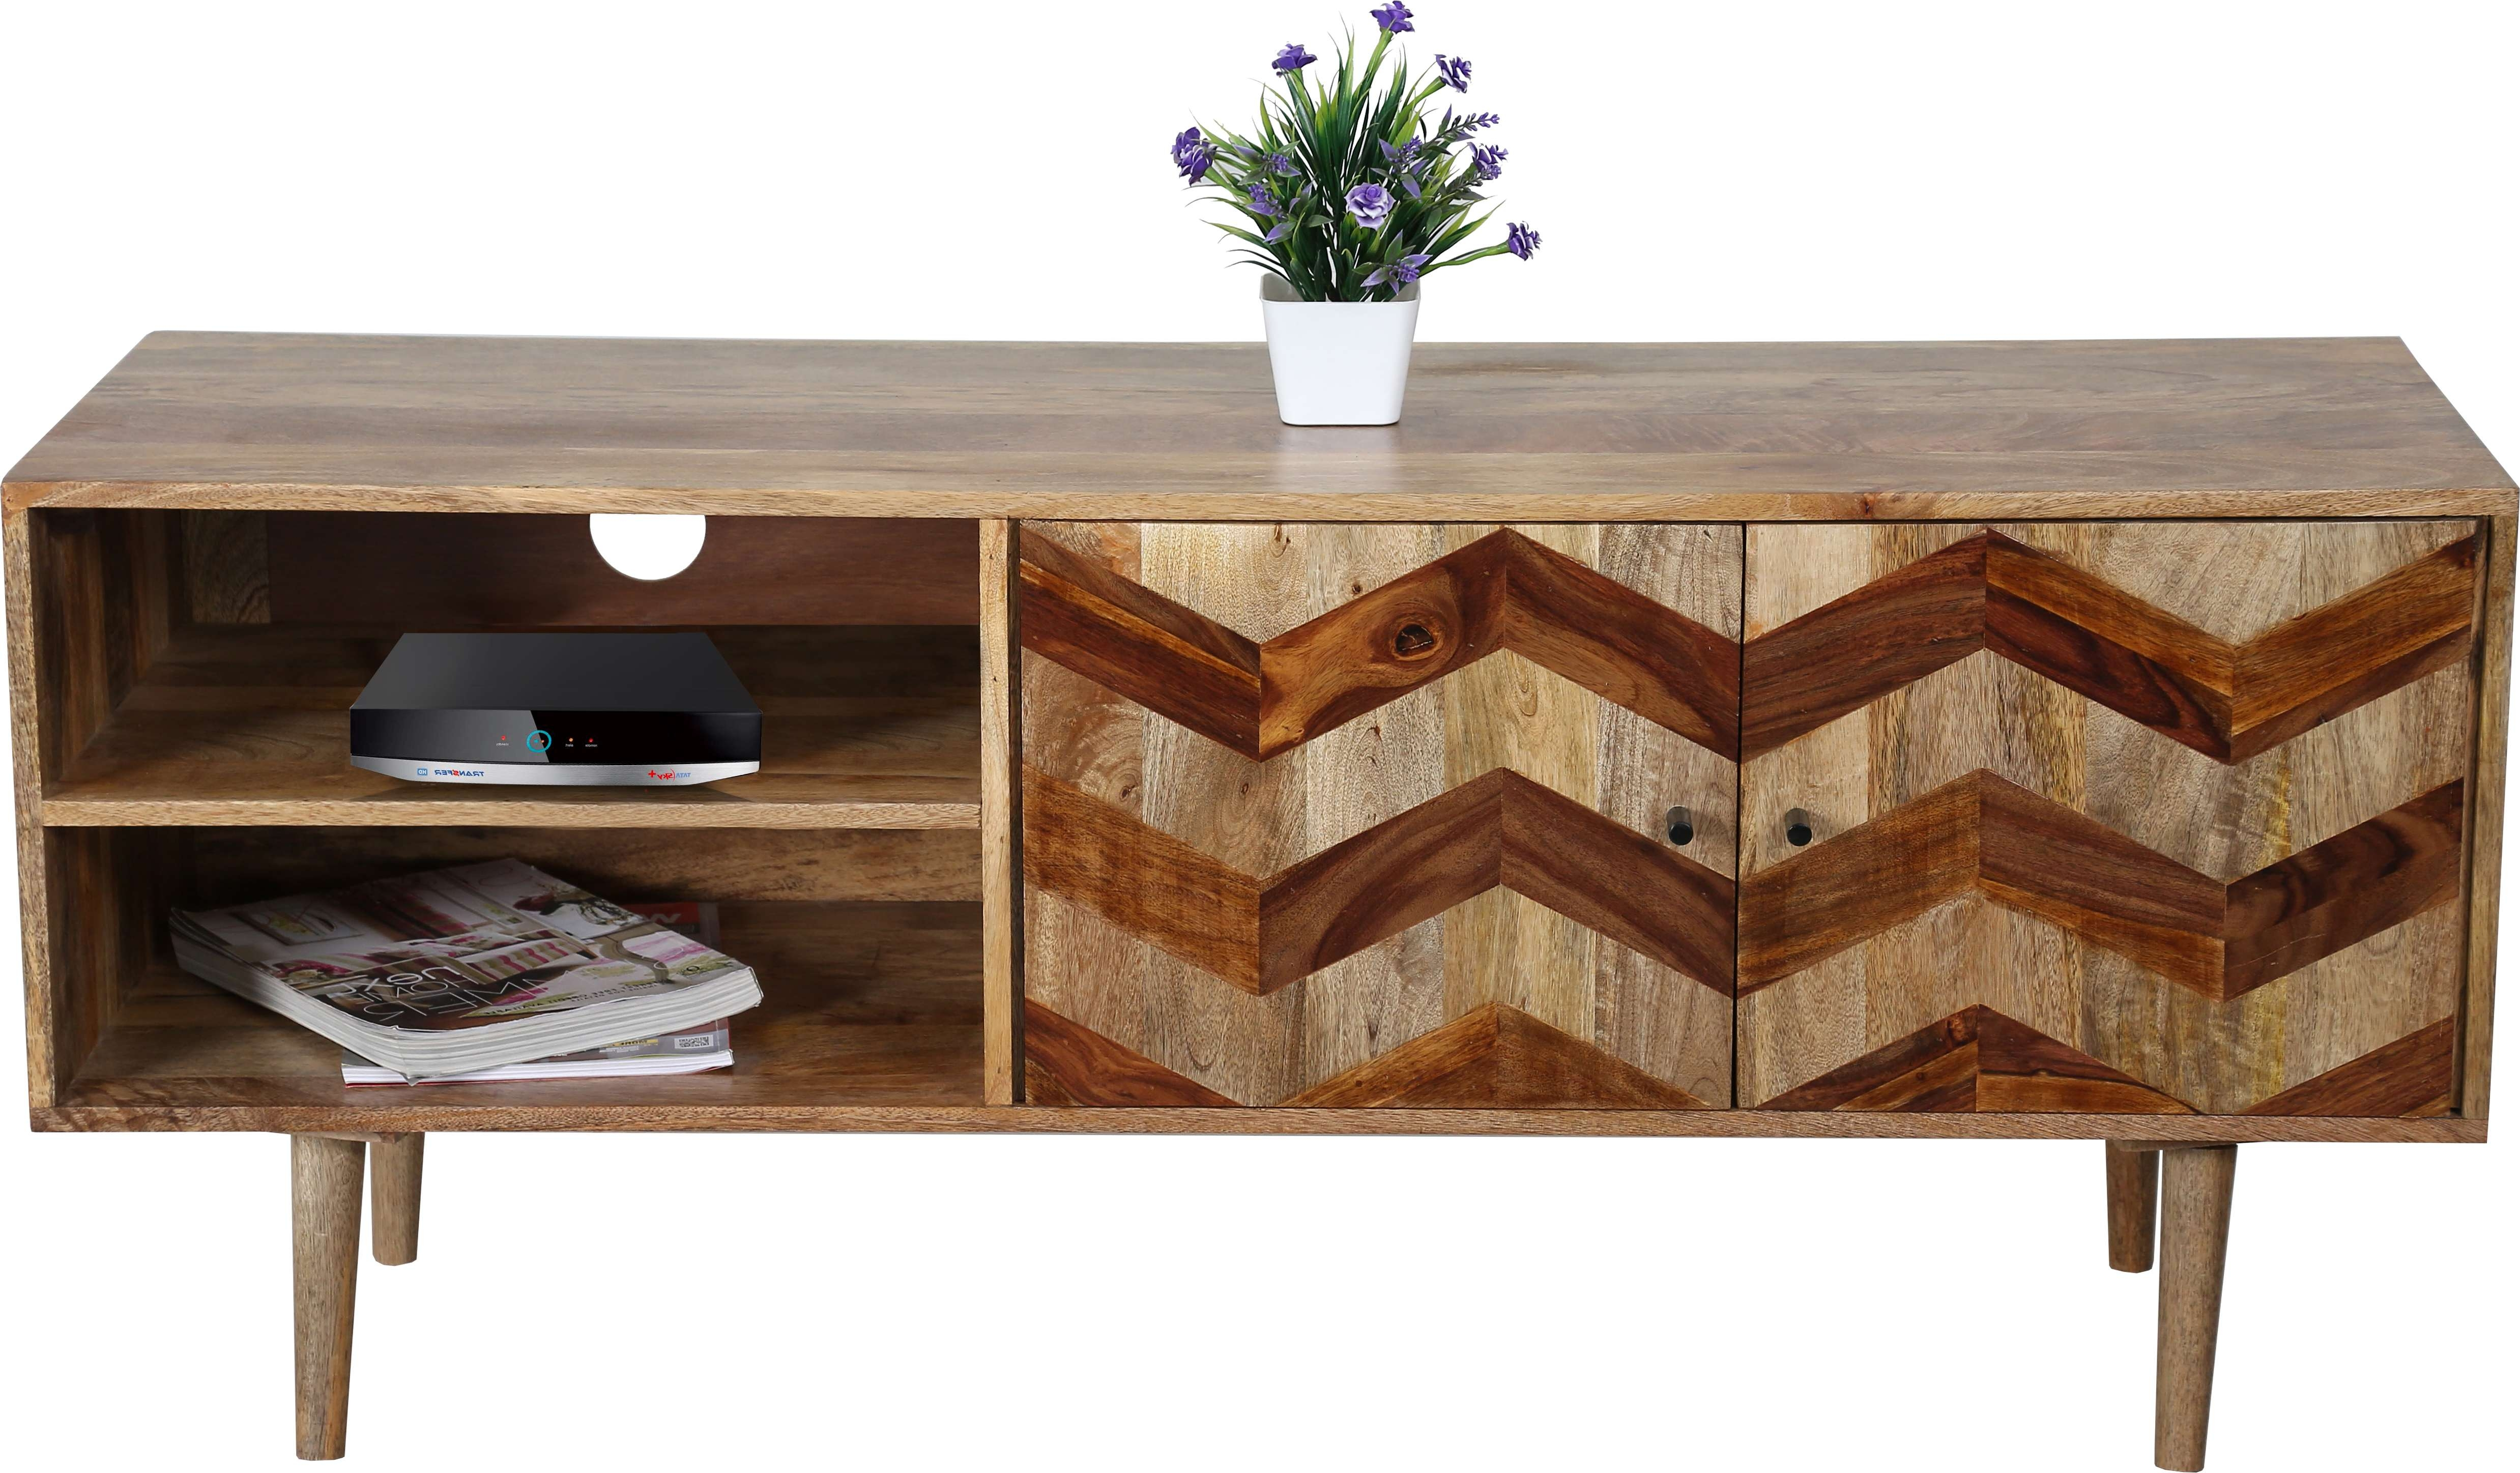 Zigzag Themed Tv Cabinet In Light Mango Wood With Wooden Legs Within Mango Wood Tv Cabinets (View 10 of 20)